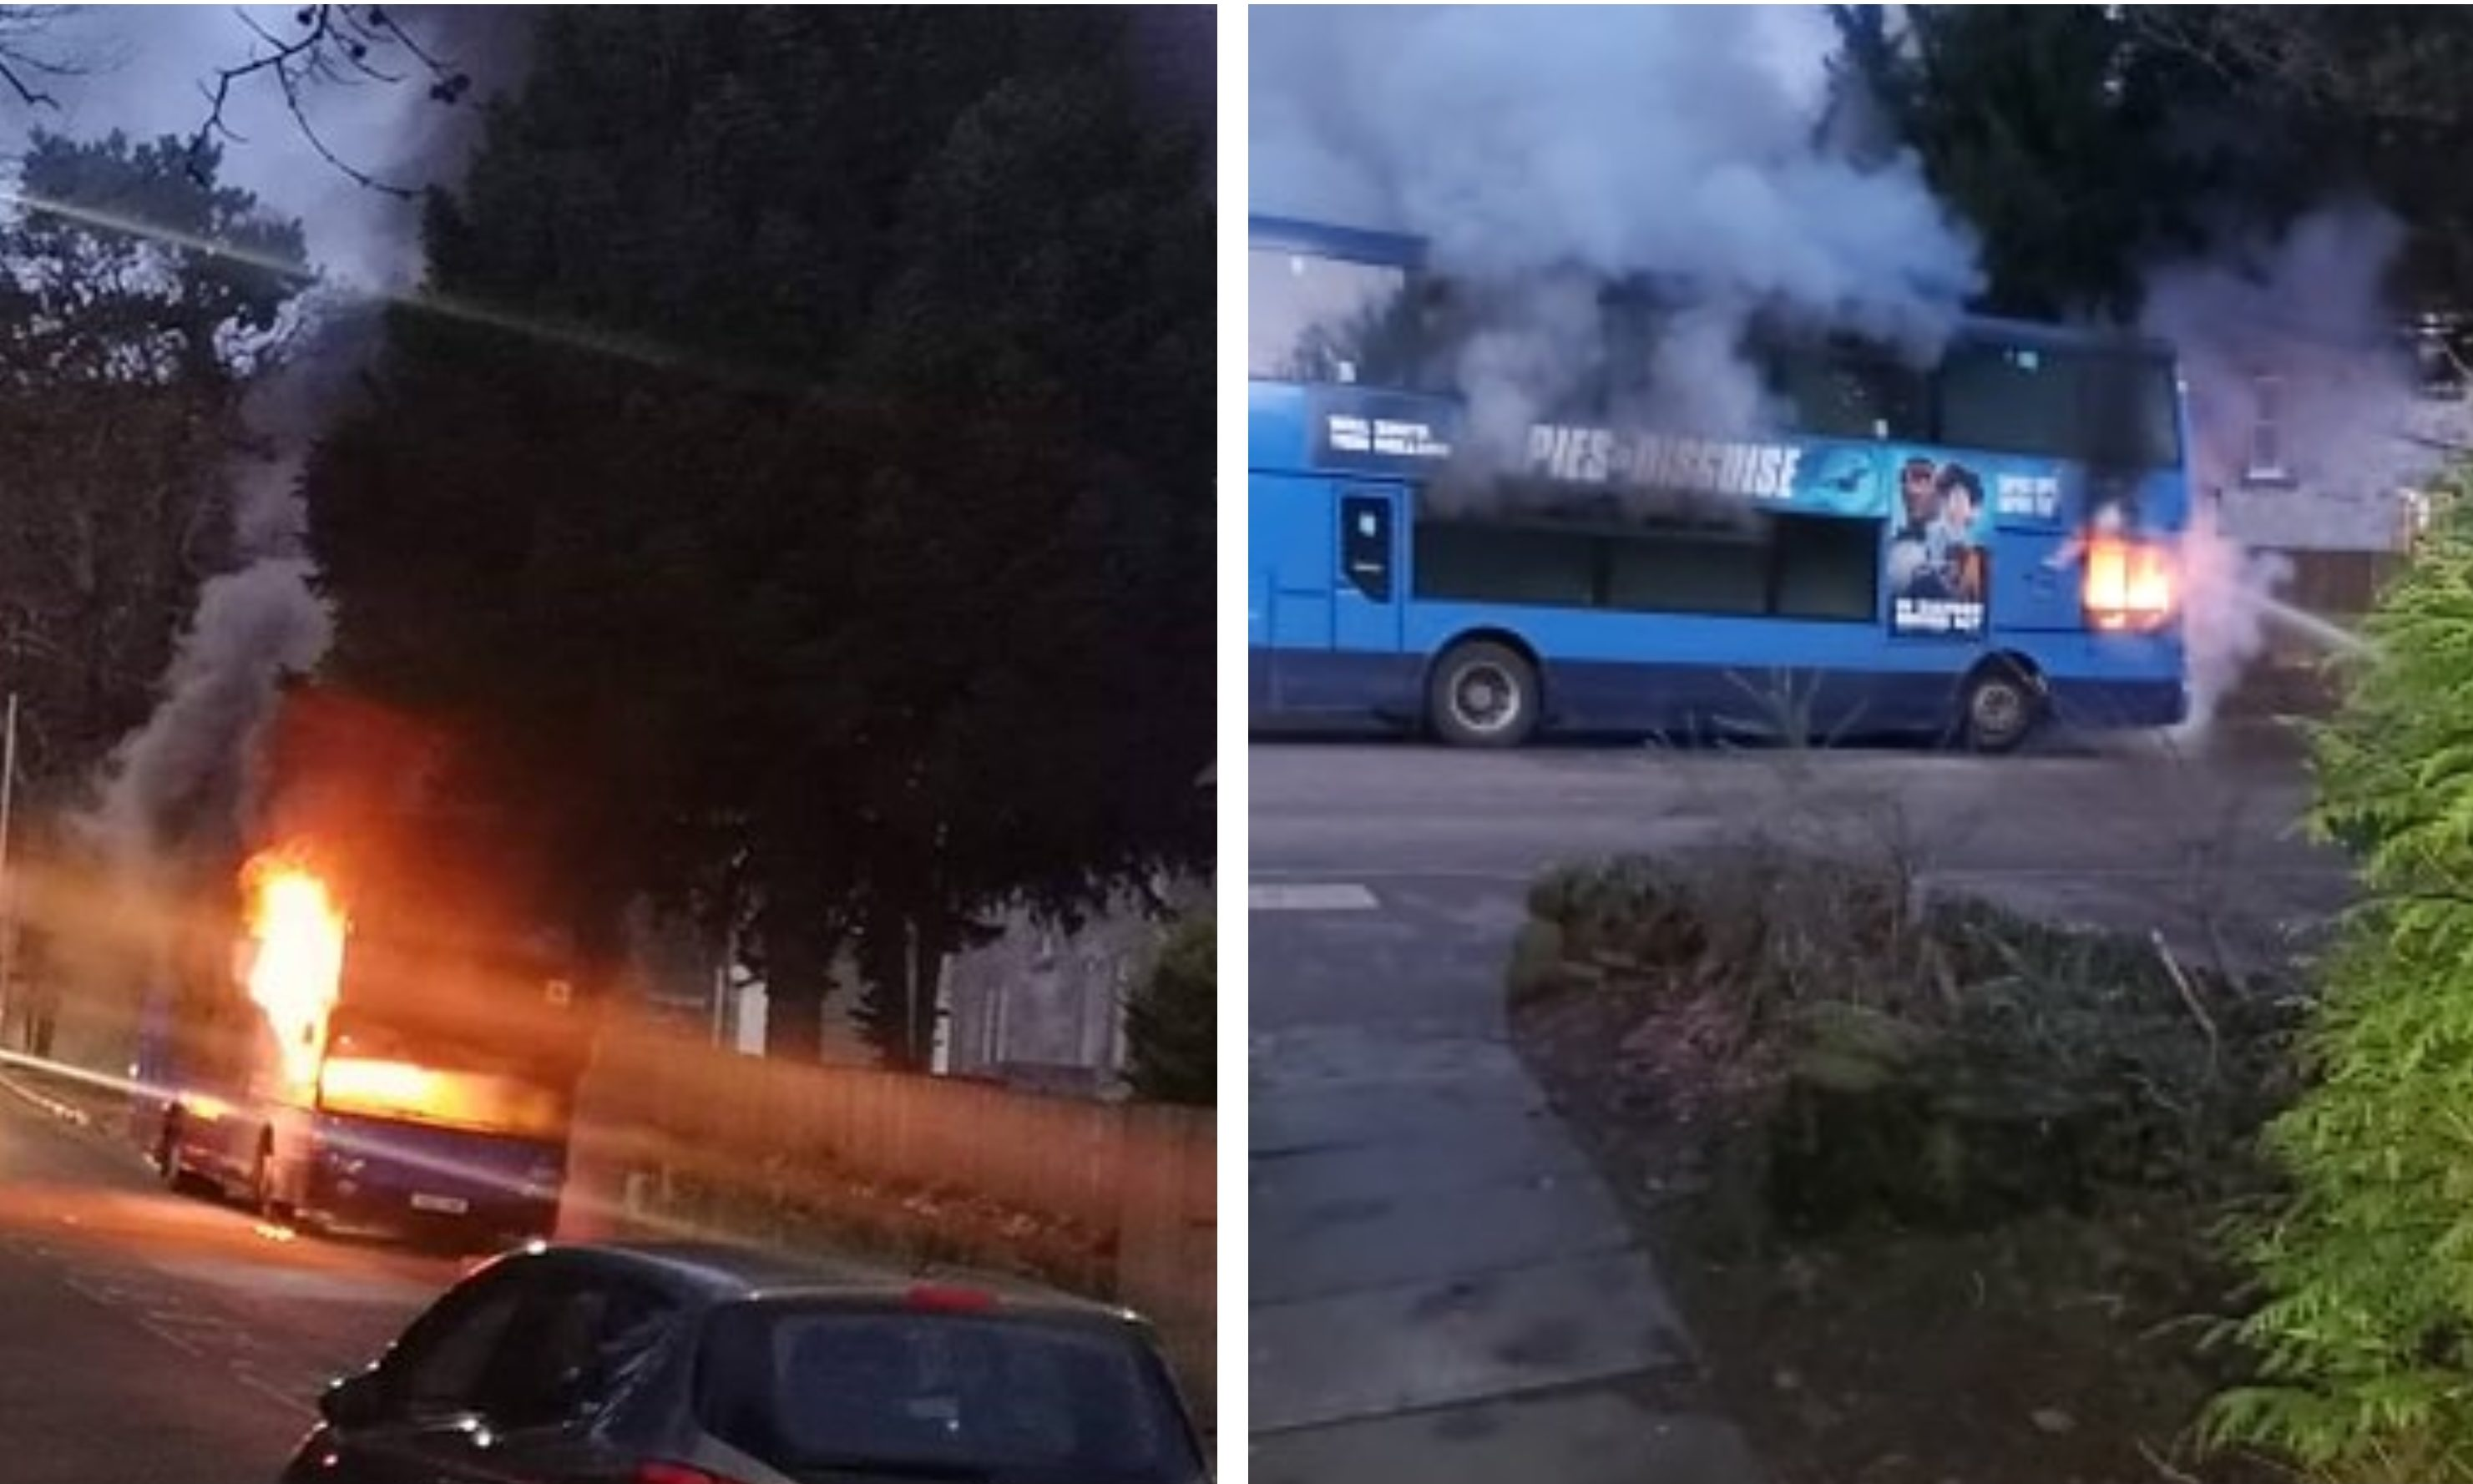 The bus goes up in flames outside Queen Anne High.